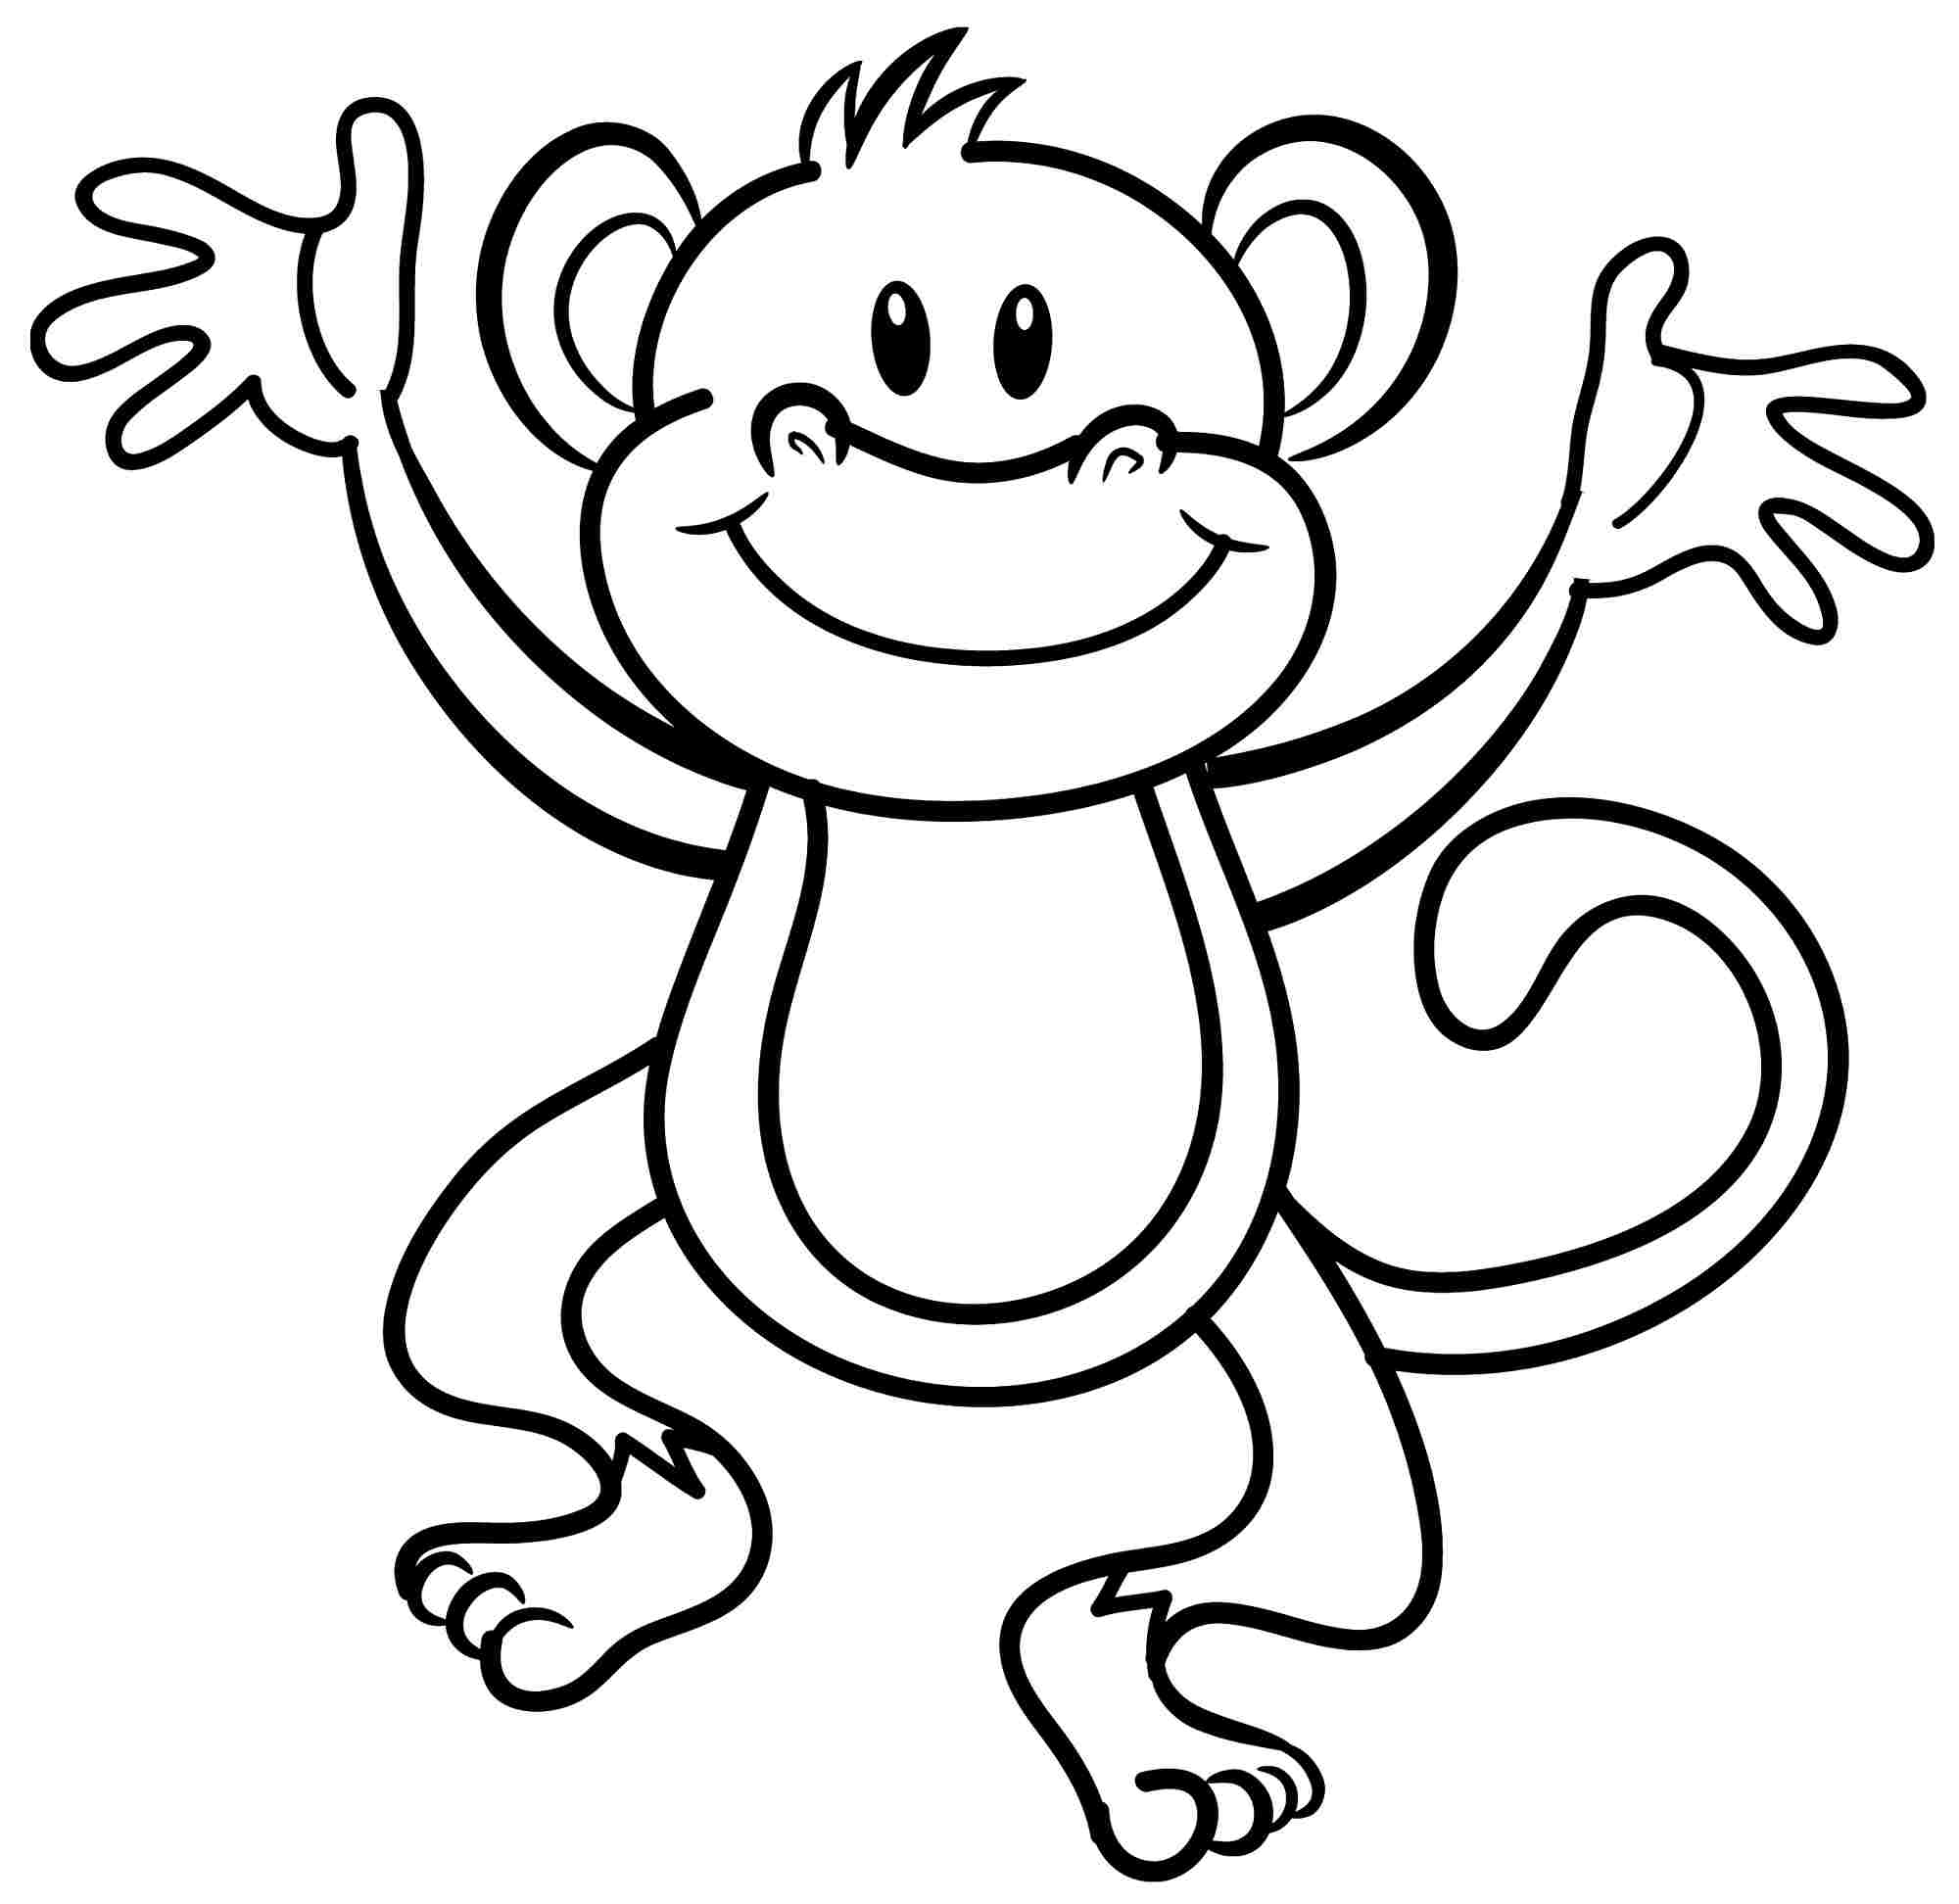 2000x1944 Free Monkey Coloring Pages Collection